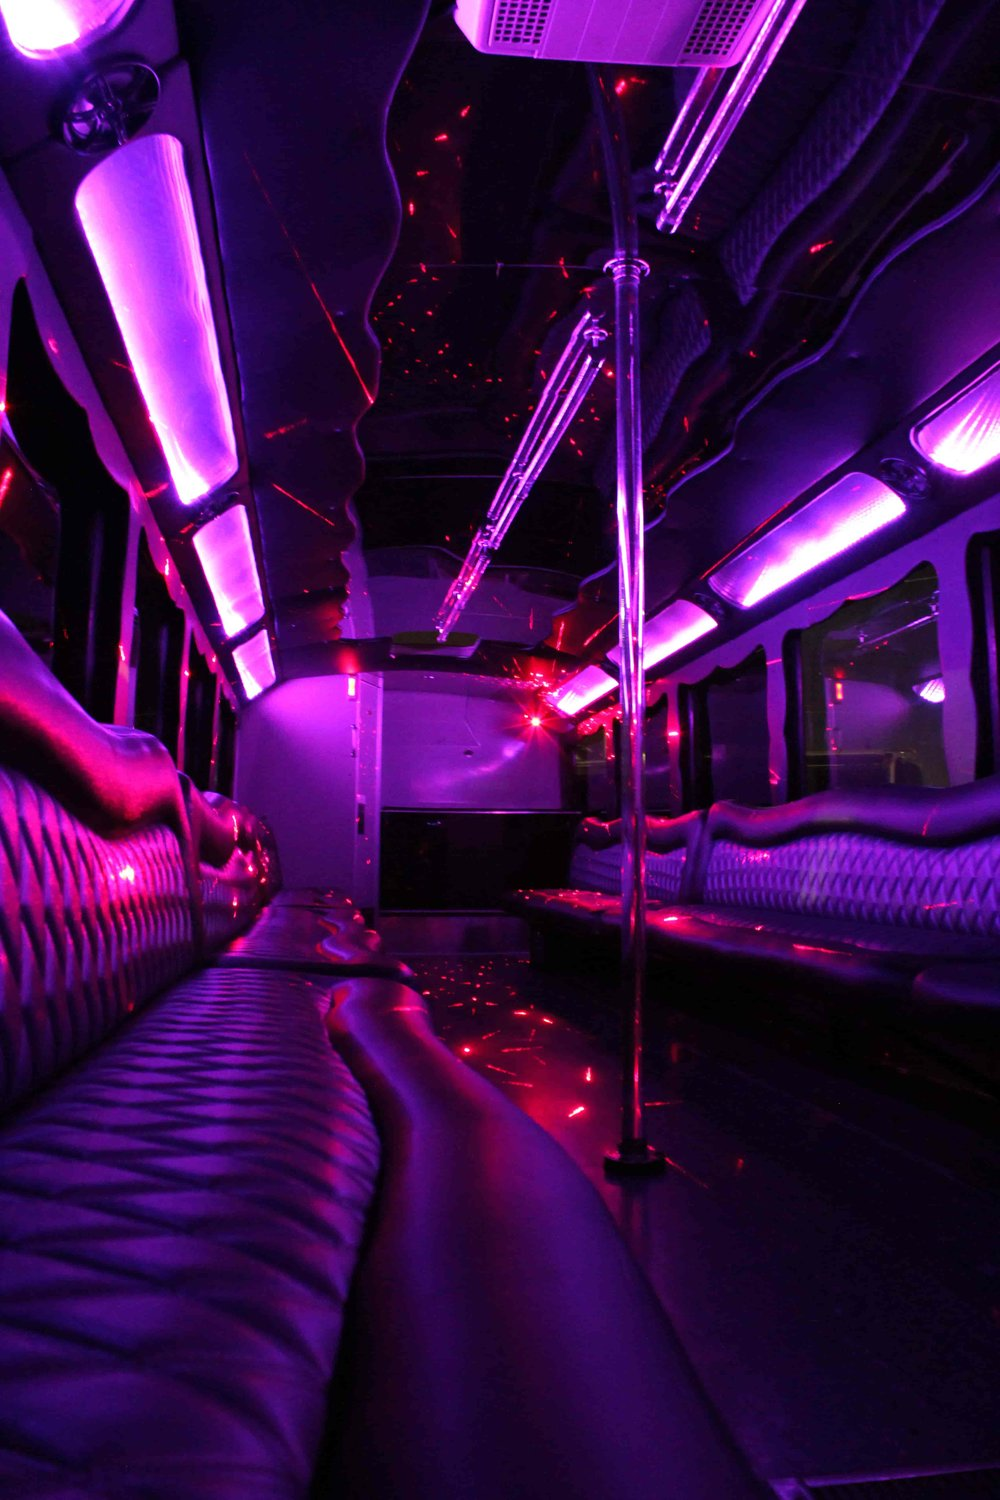 Vertical Long Seat Shot with a Pink to Purple warmth